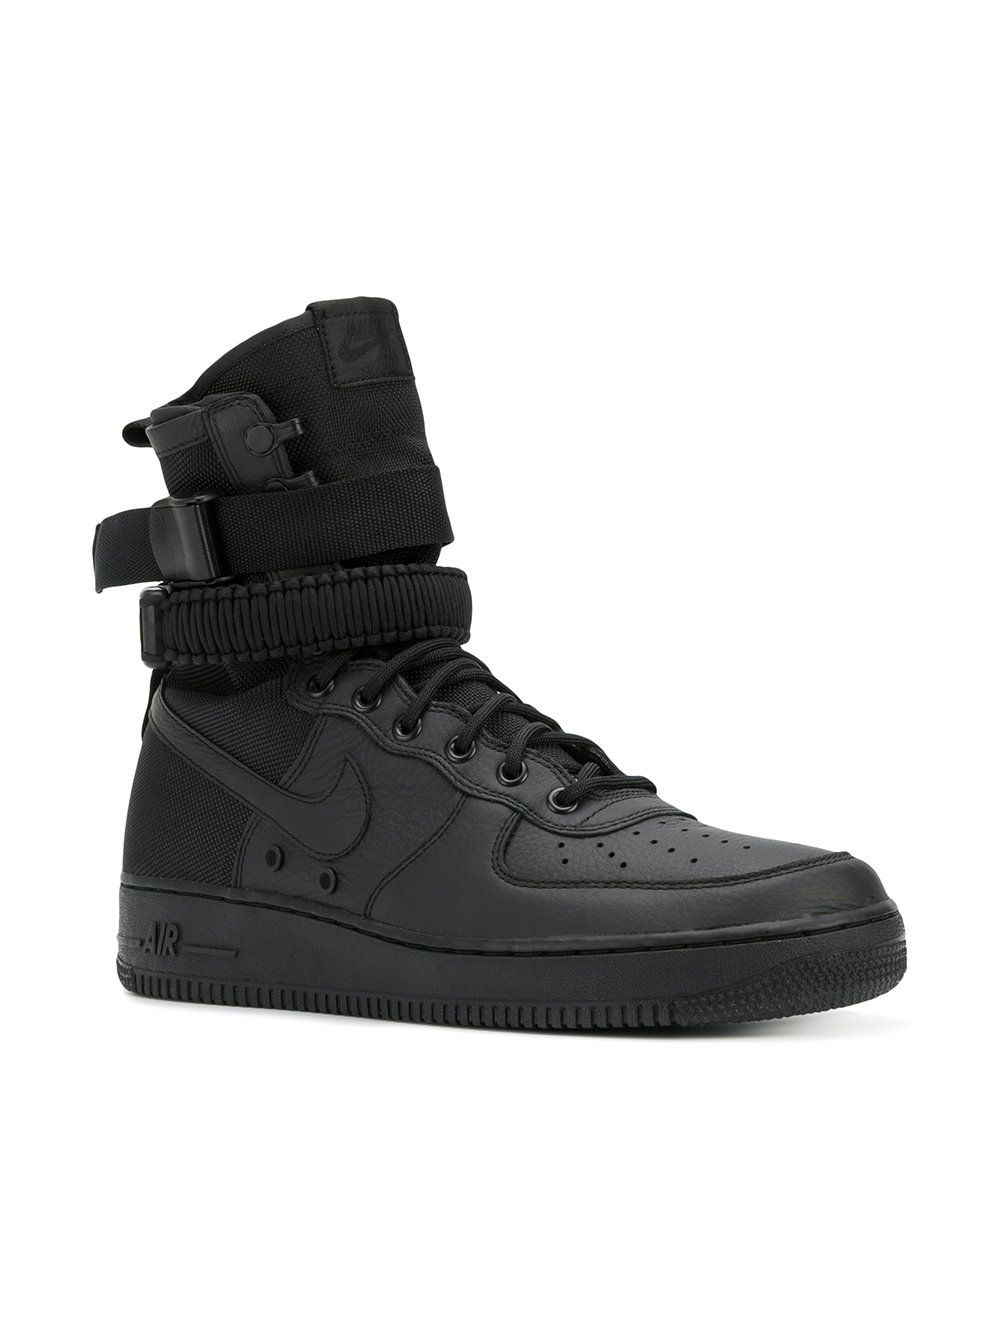 1 In Force Boot Hi SneakersOutfit Nike Air 2019 Ideas Sf UzqSVpM